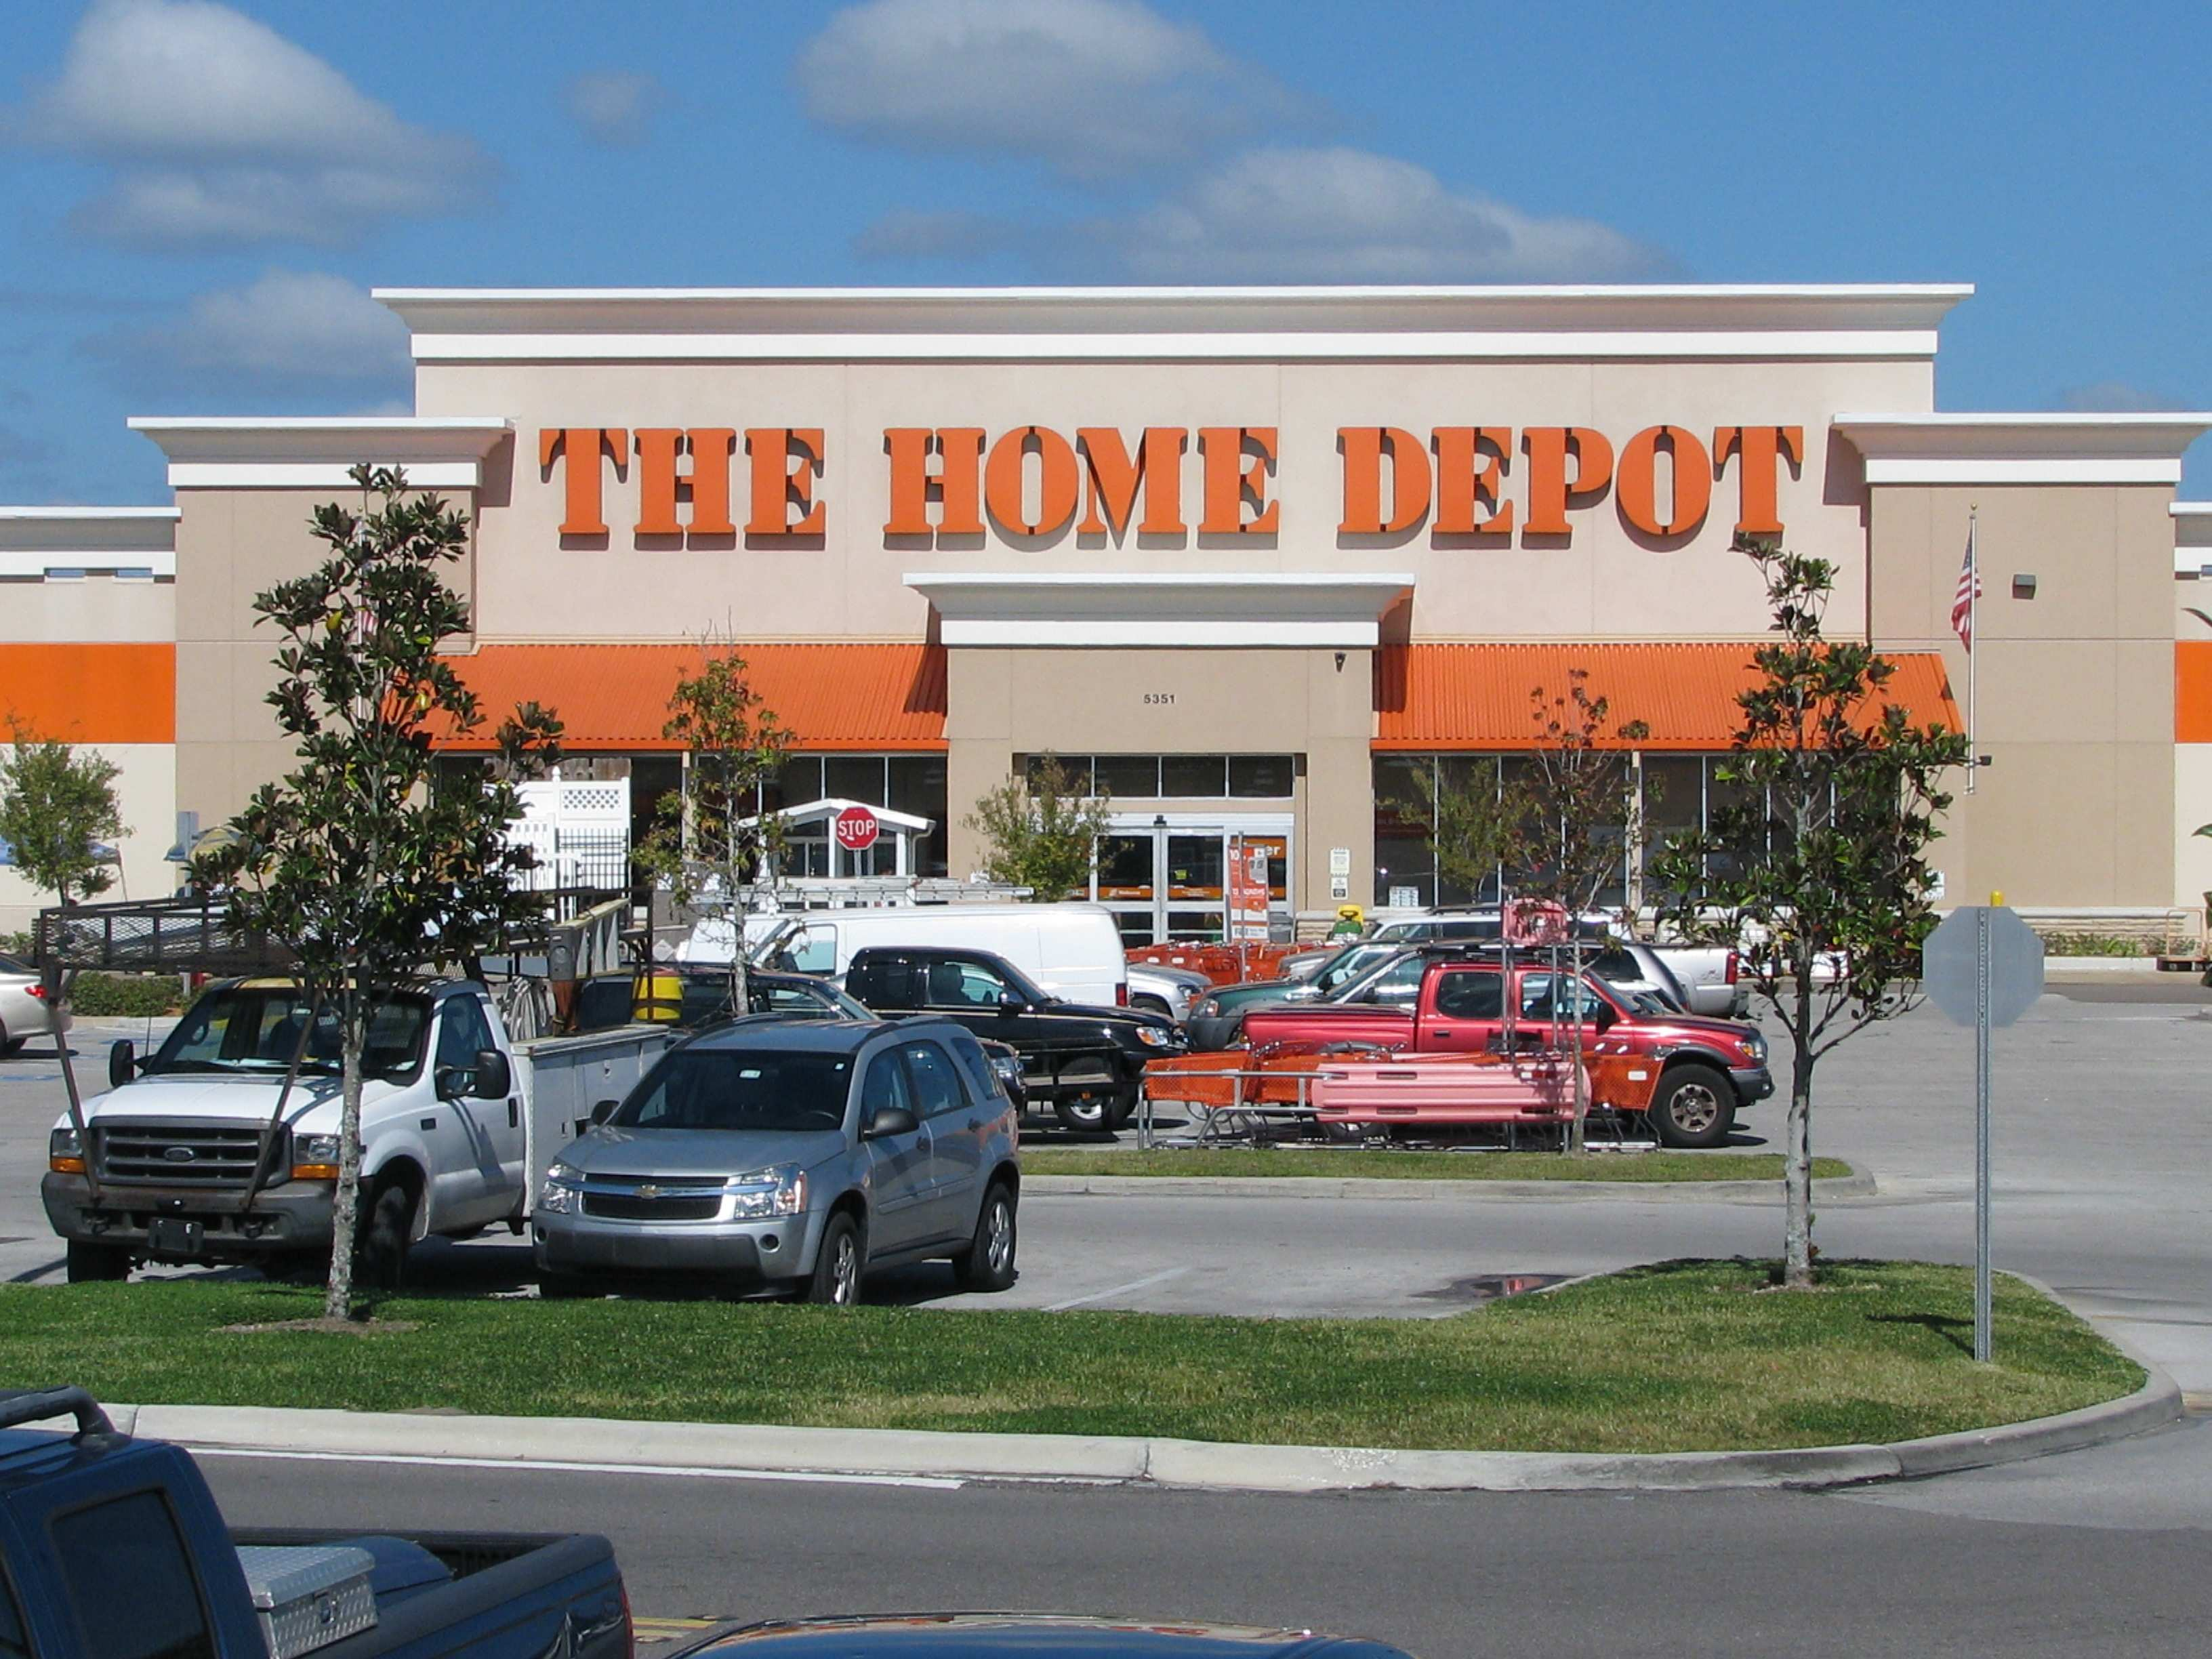 Home depot in arvada colorado